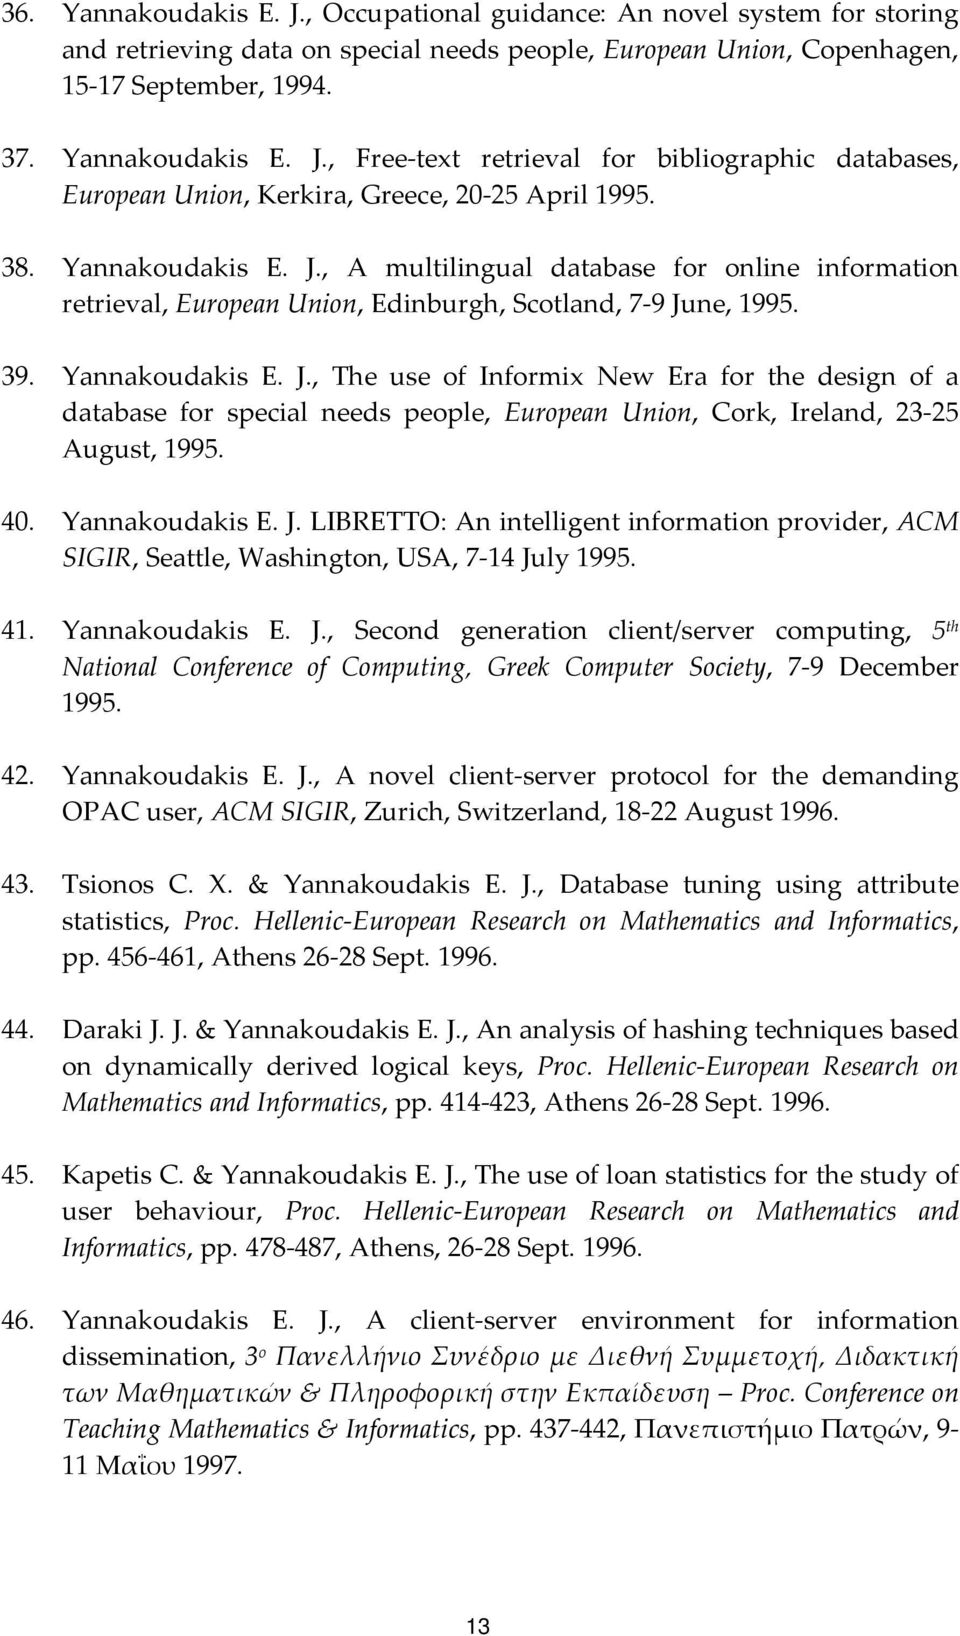 40. Yannakoudakis E. J. LIBRETTO: An intelligent information provider, ACM SIGIR, Seattle, Washington, USA, 7 14 July 1995. 41. Yannakoudakis E. J., Second generation client/server computing, 5 th National Conference of Computing, Greek Computer Society, 7 9 December 1995.